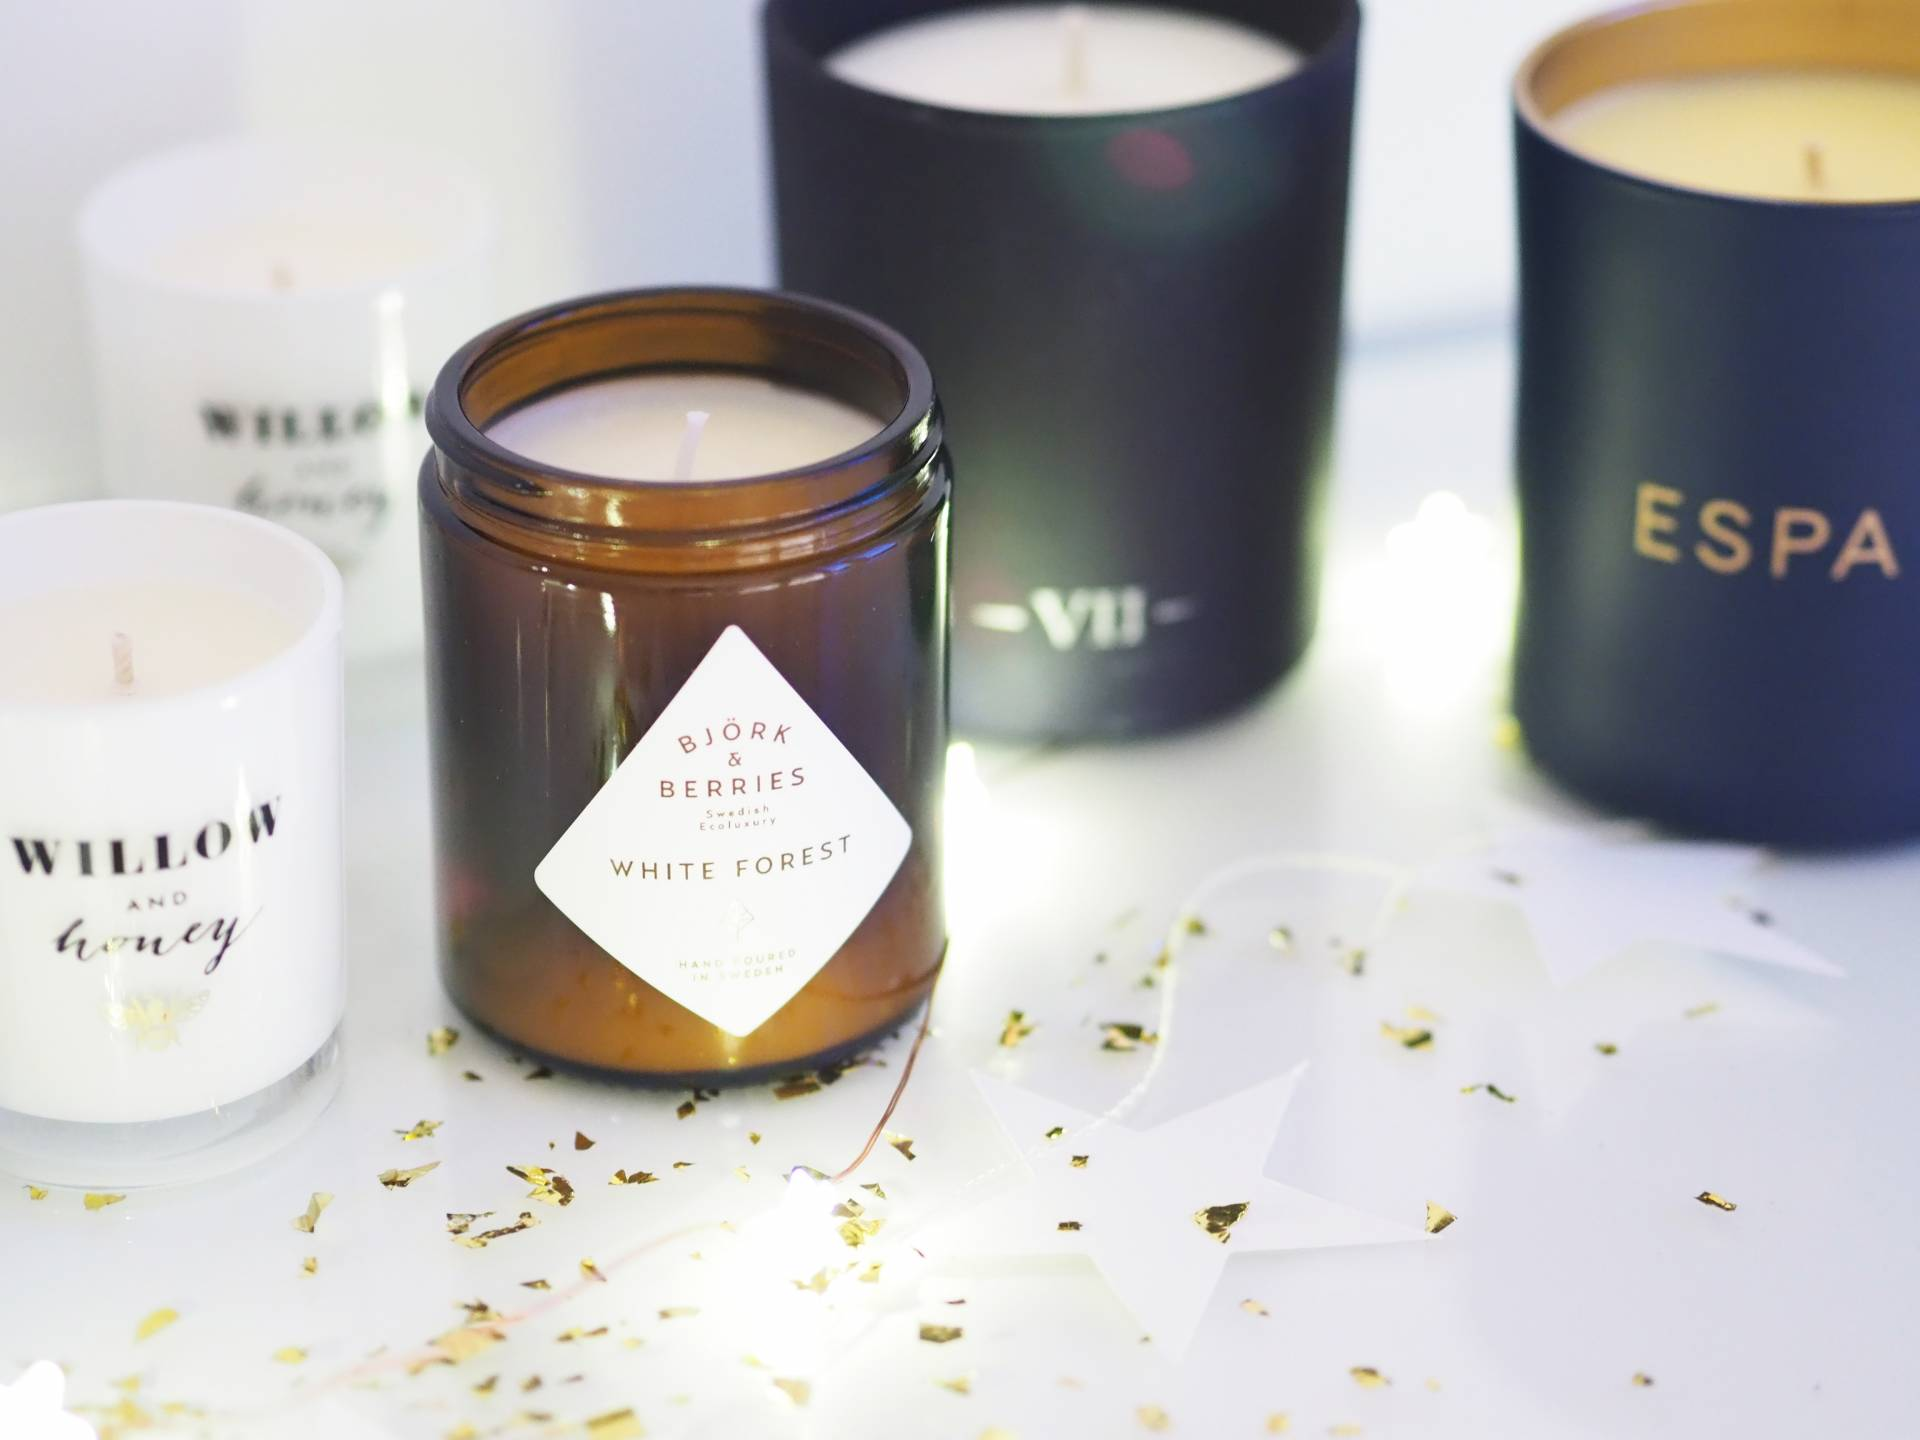 THE WINTER CANDLES EDIT | Megan Taylor